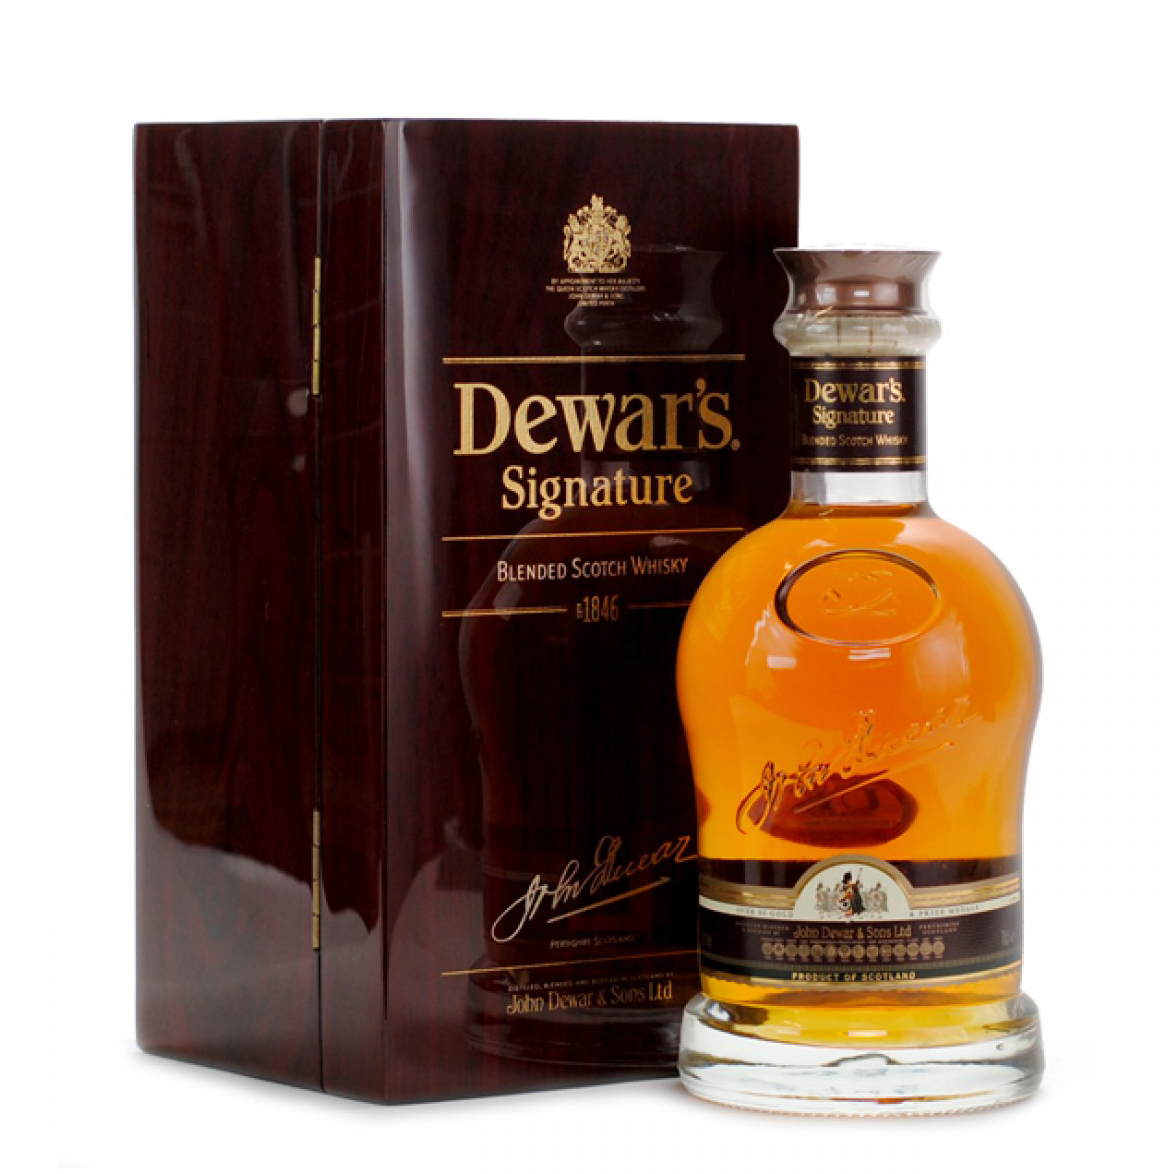 Dewars Signature Blended Scotch Whisky | WhiskeyTimes.com.jpg